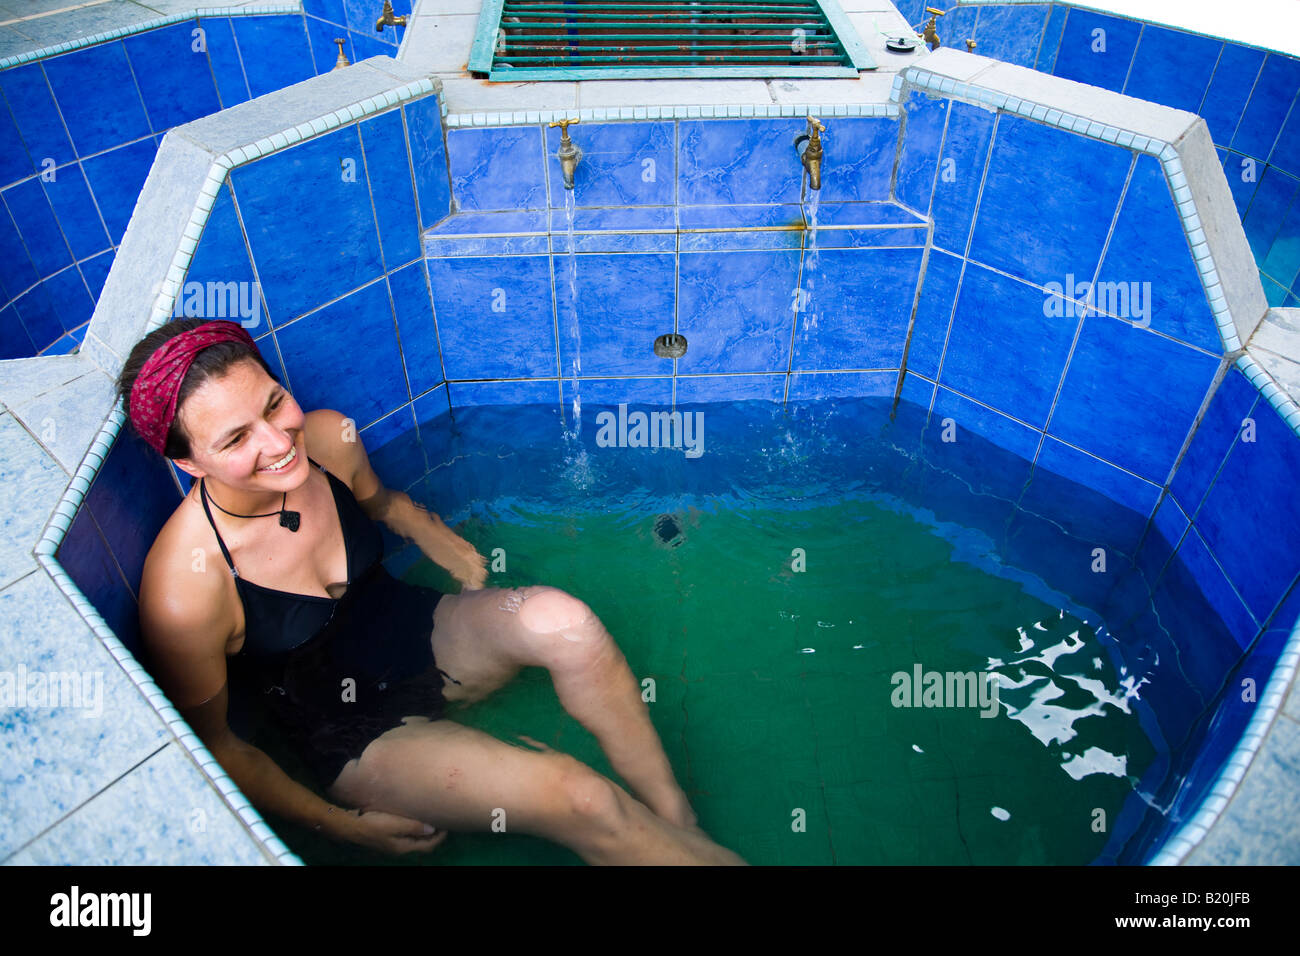 Sabah Malaysia Borneo Kinabalu National Park Woman in her late twenties relaxing in a japanese style hot tub - Stock Image